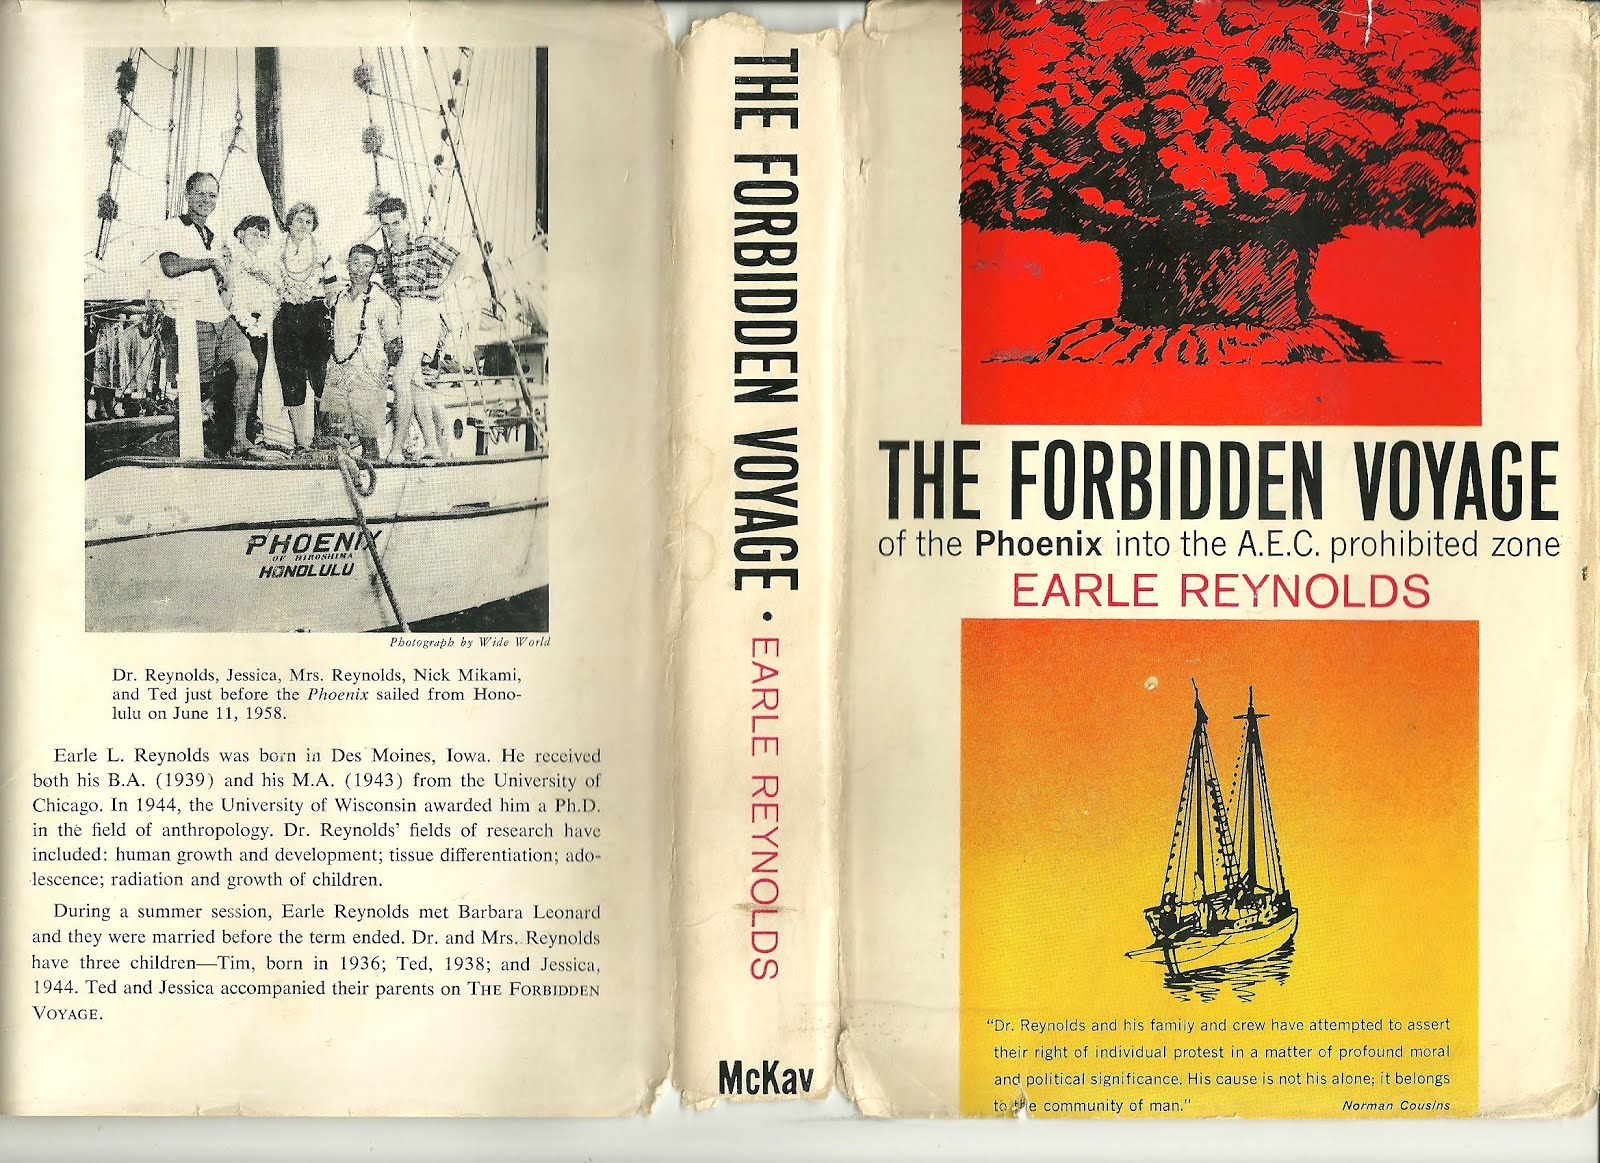 FORBIDDEN VOYAGE - Click on cover